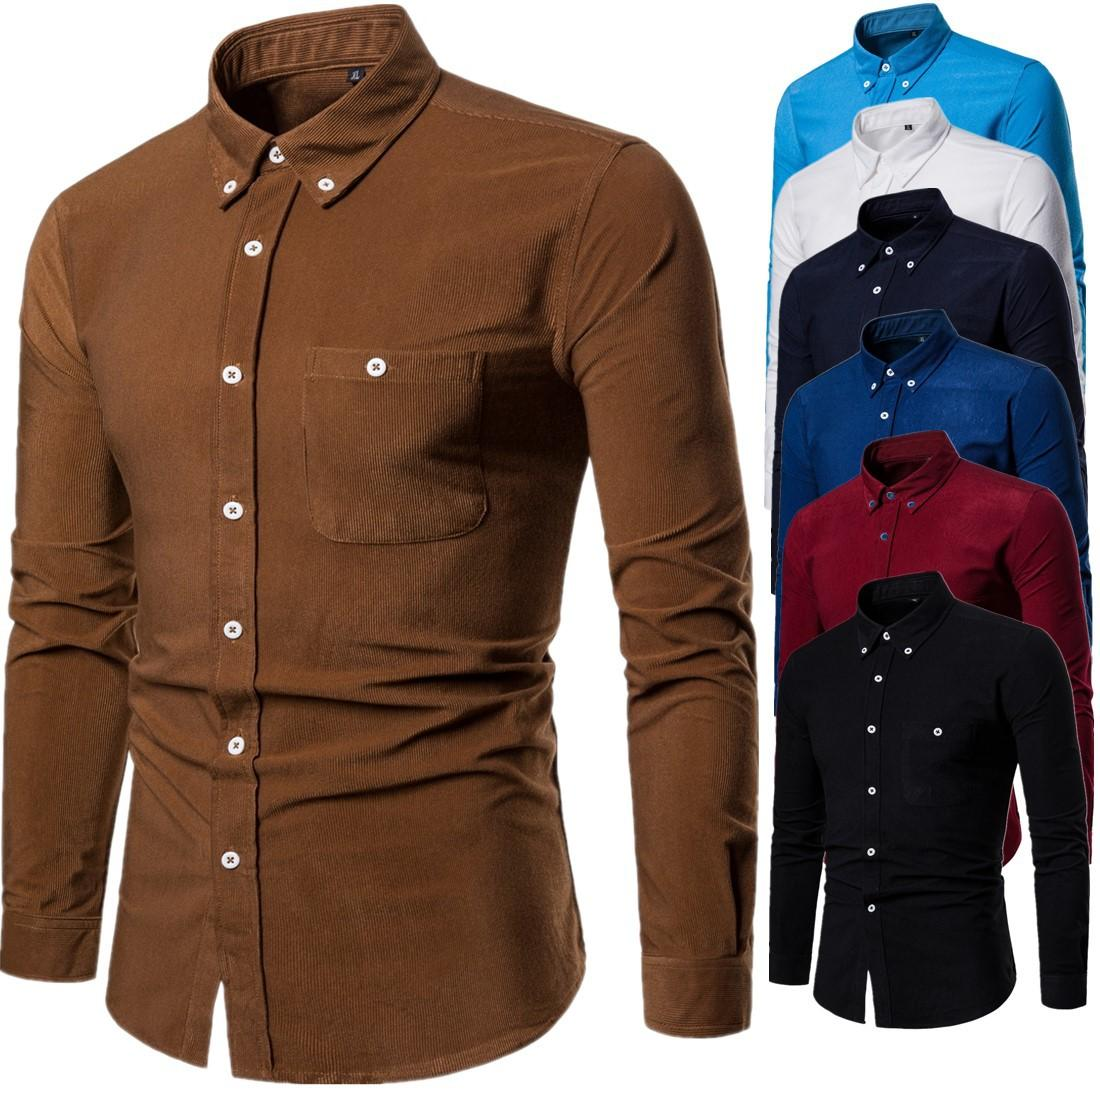 Spring Autumn New Mens Shirt High Quality Large Size Long Sleeve Corduroy Shirt Men Fashion Casual Shirts Size M-5XL